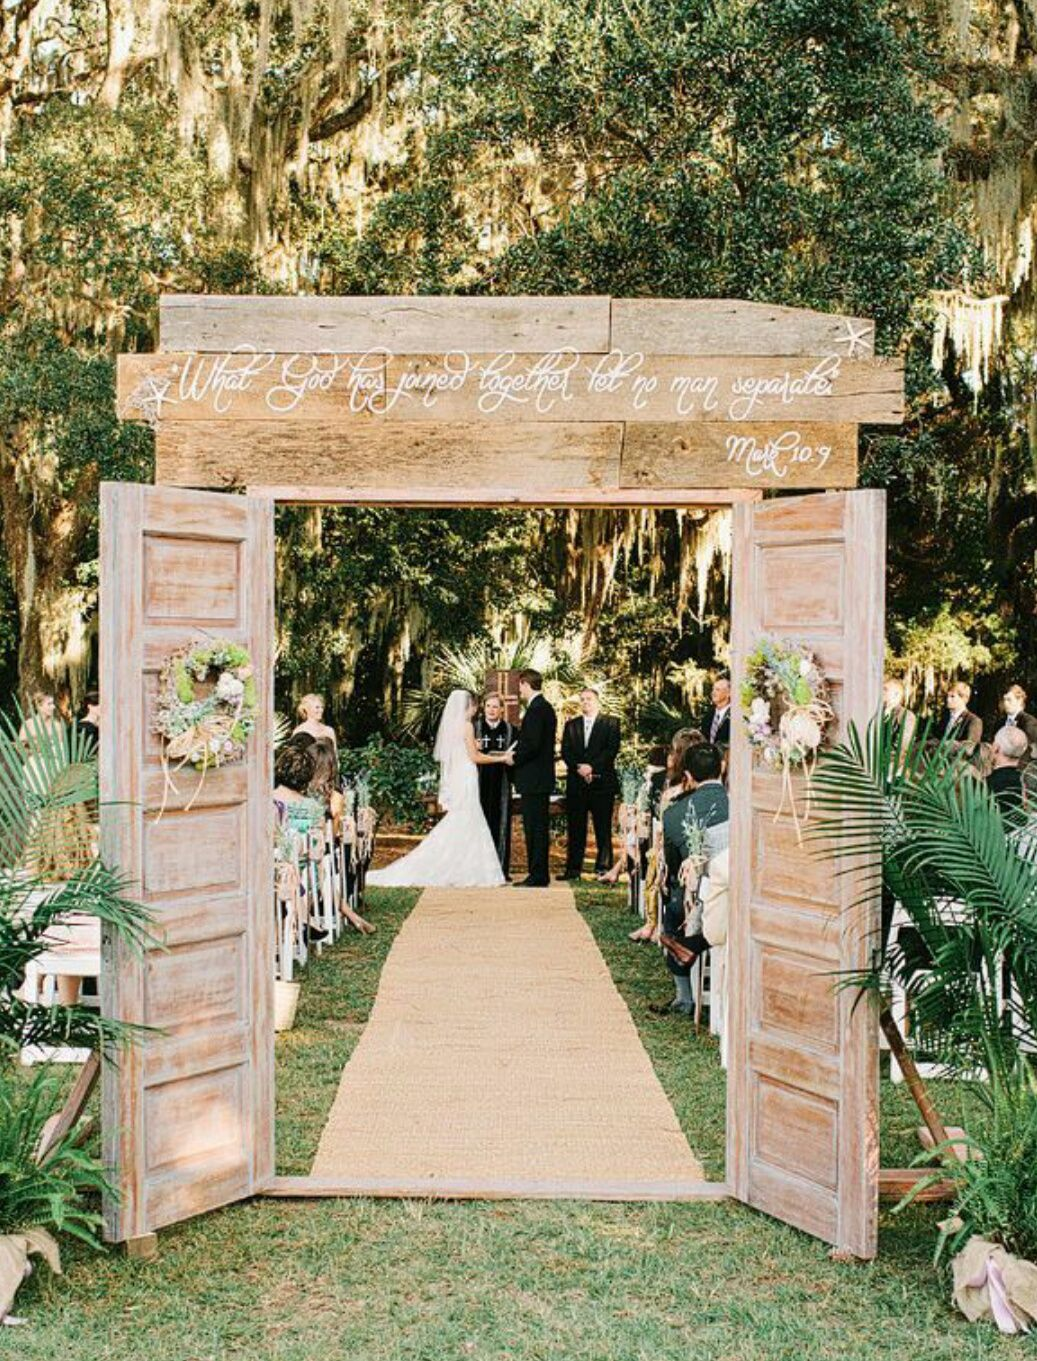 Coming Soon To River Road Chateaua Rustic Door Entrance With Hand Carved Pillars DFW Weddings